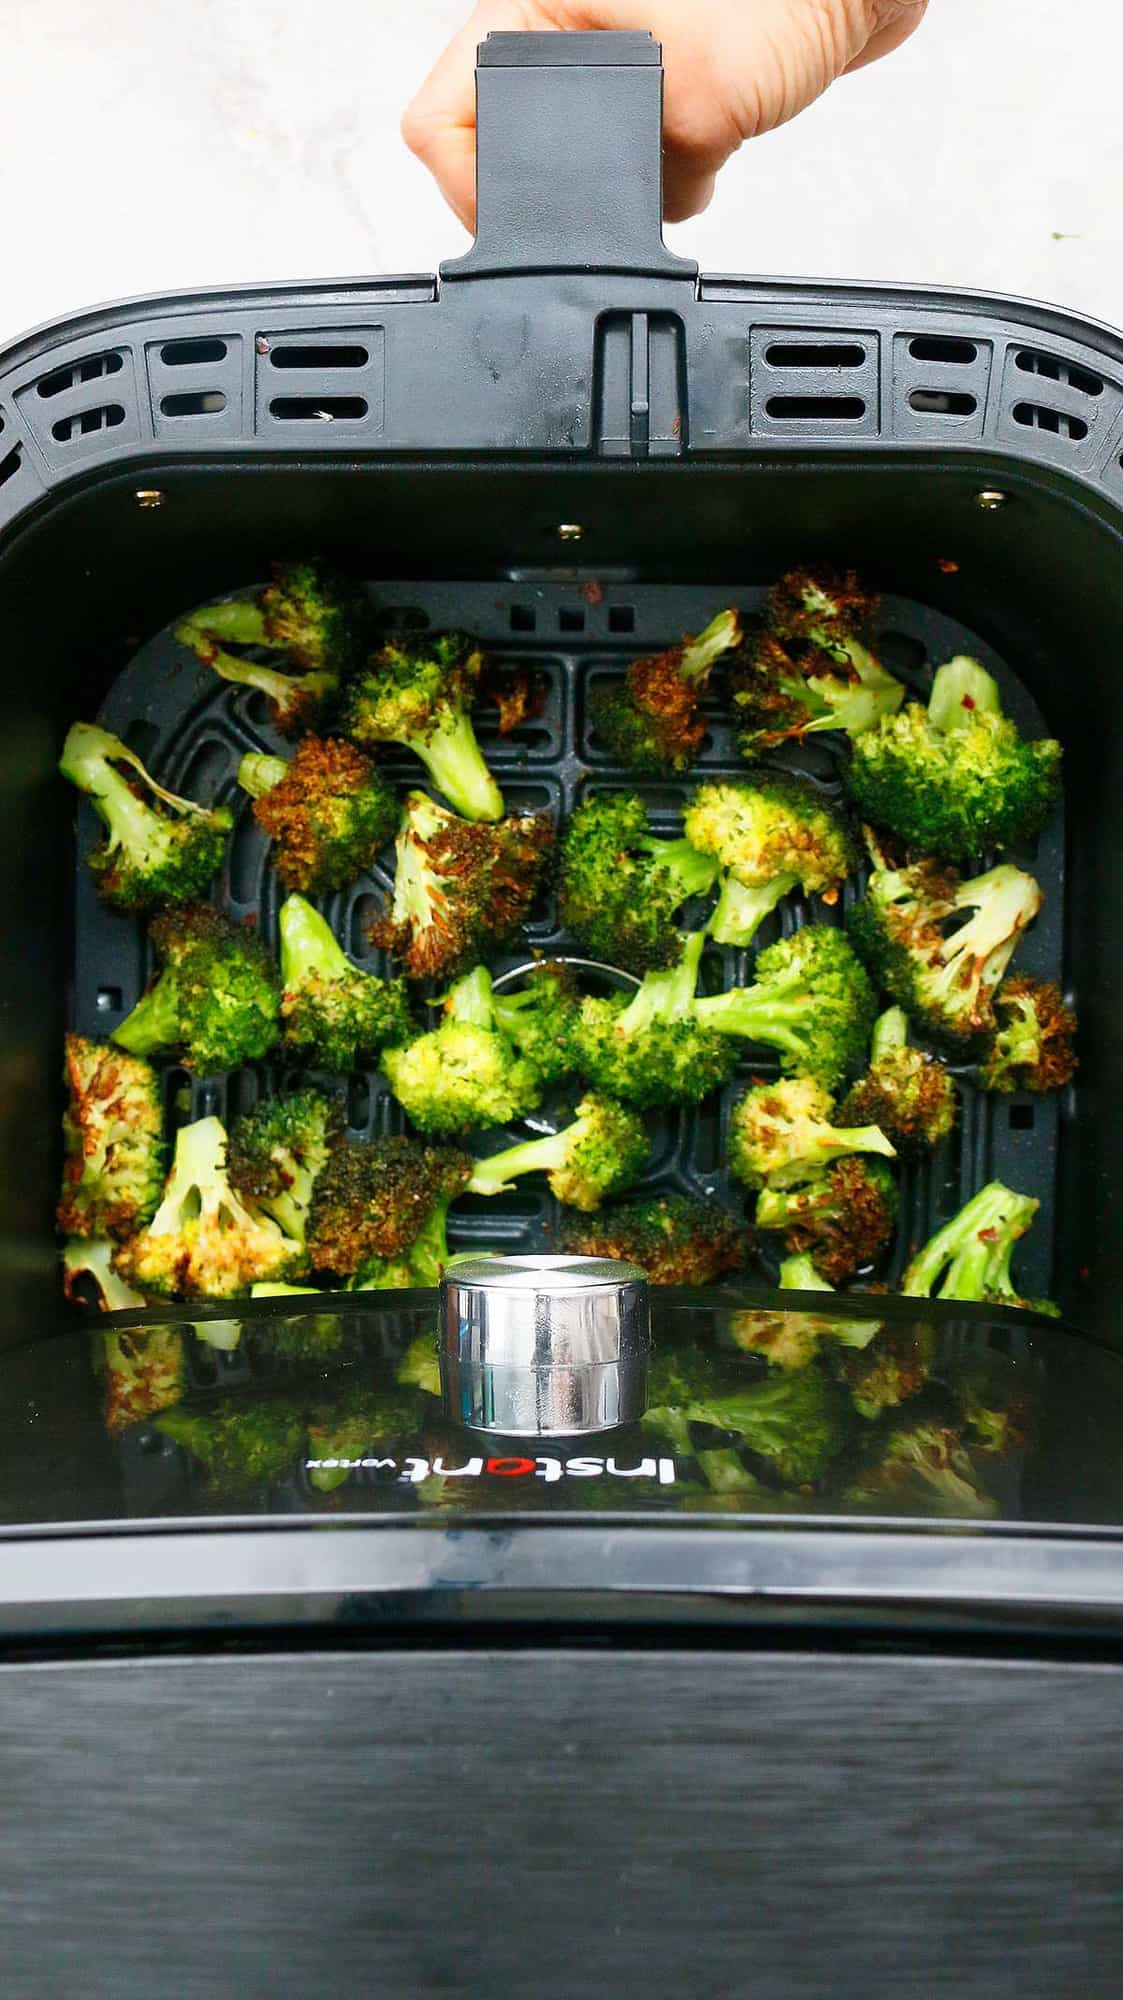 a hand pulling out an air fryer basket with crispy roasted broccoli